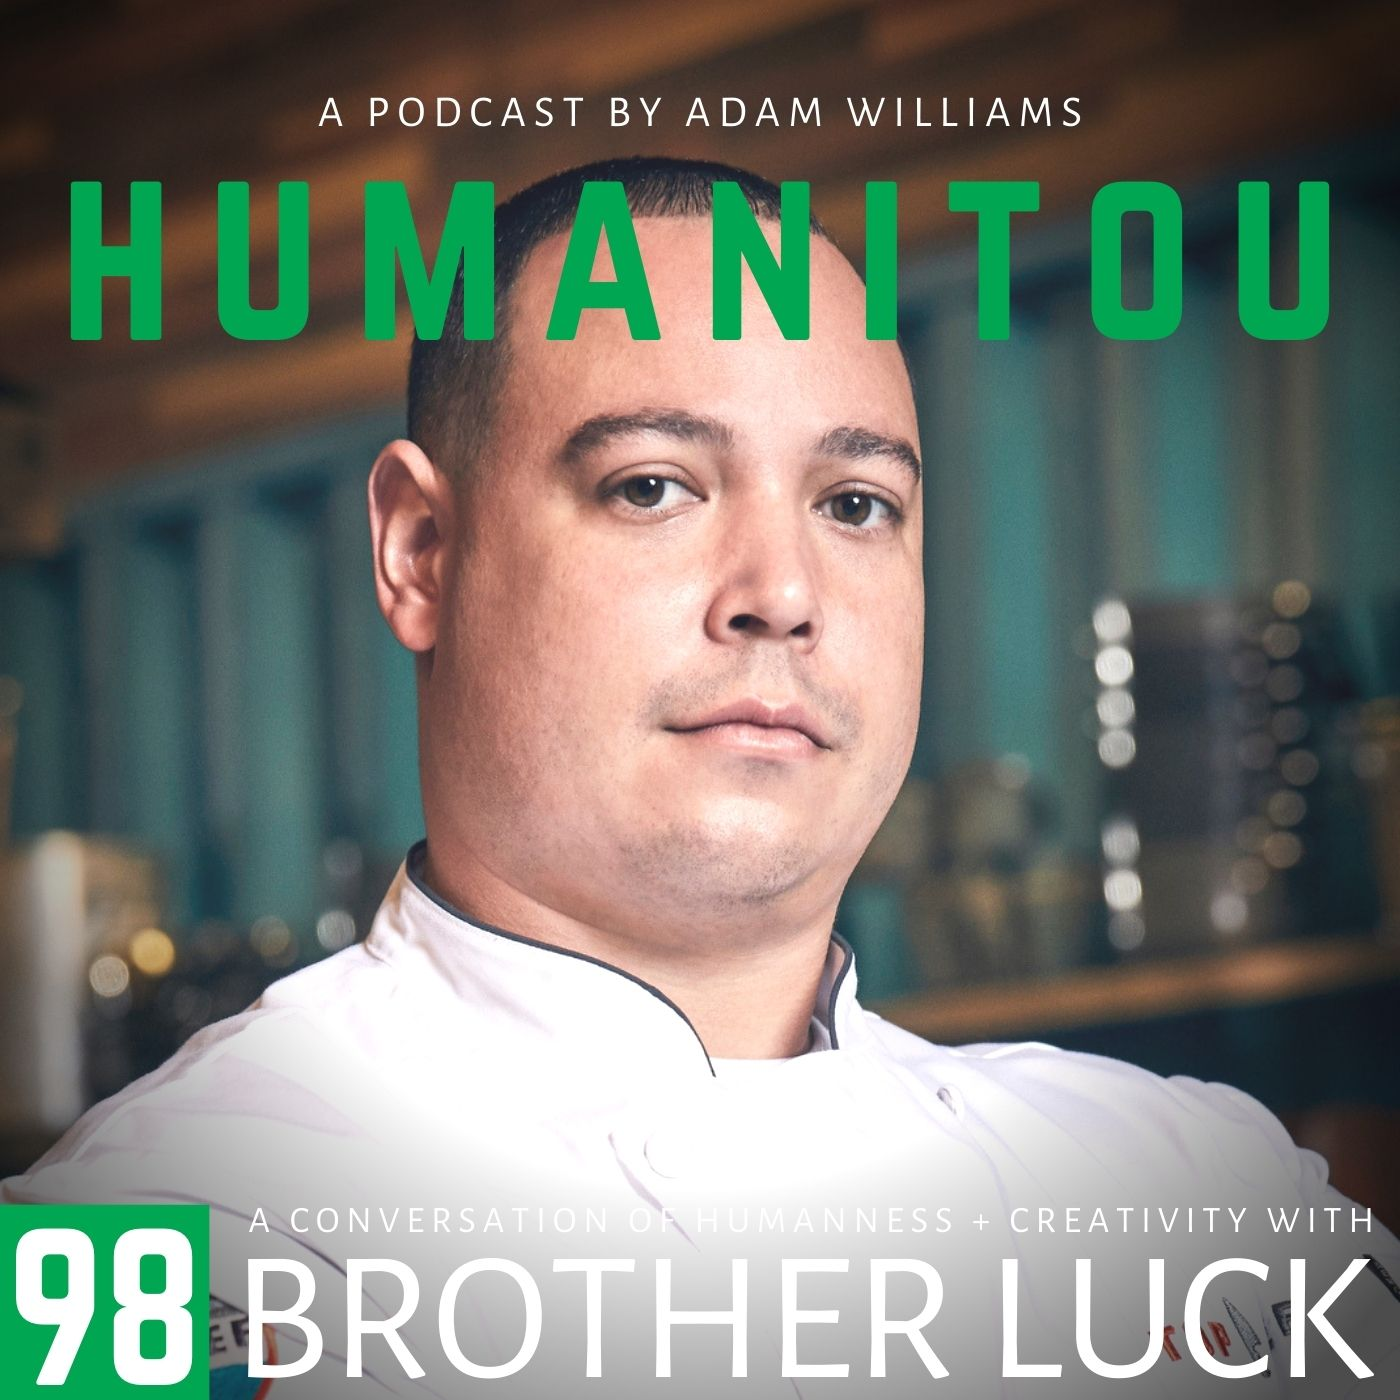 98: Brother Luck, celebrity chef, on Top Chef and James Beard, mental health, #nolucksgiven and making bold decisions when the chips are down